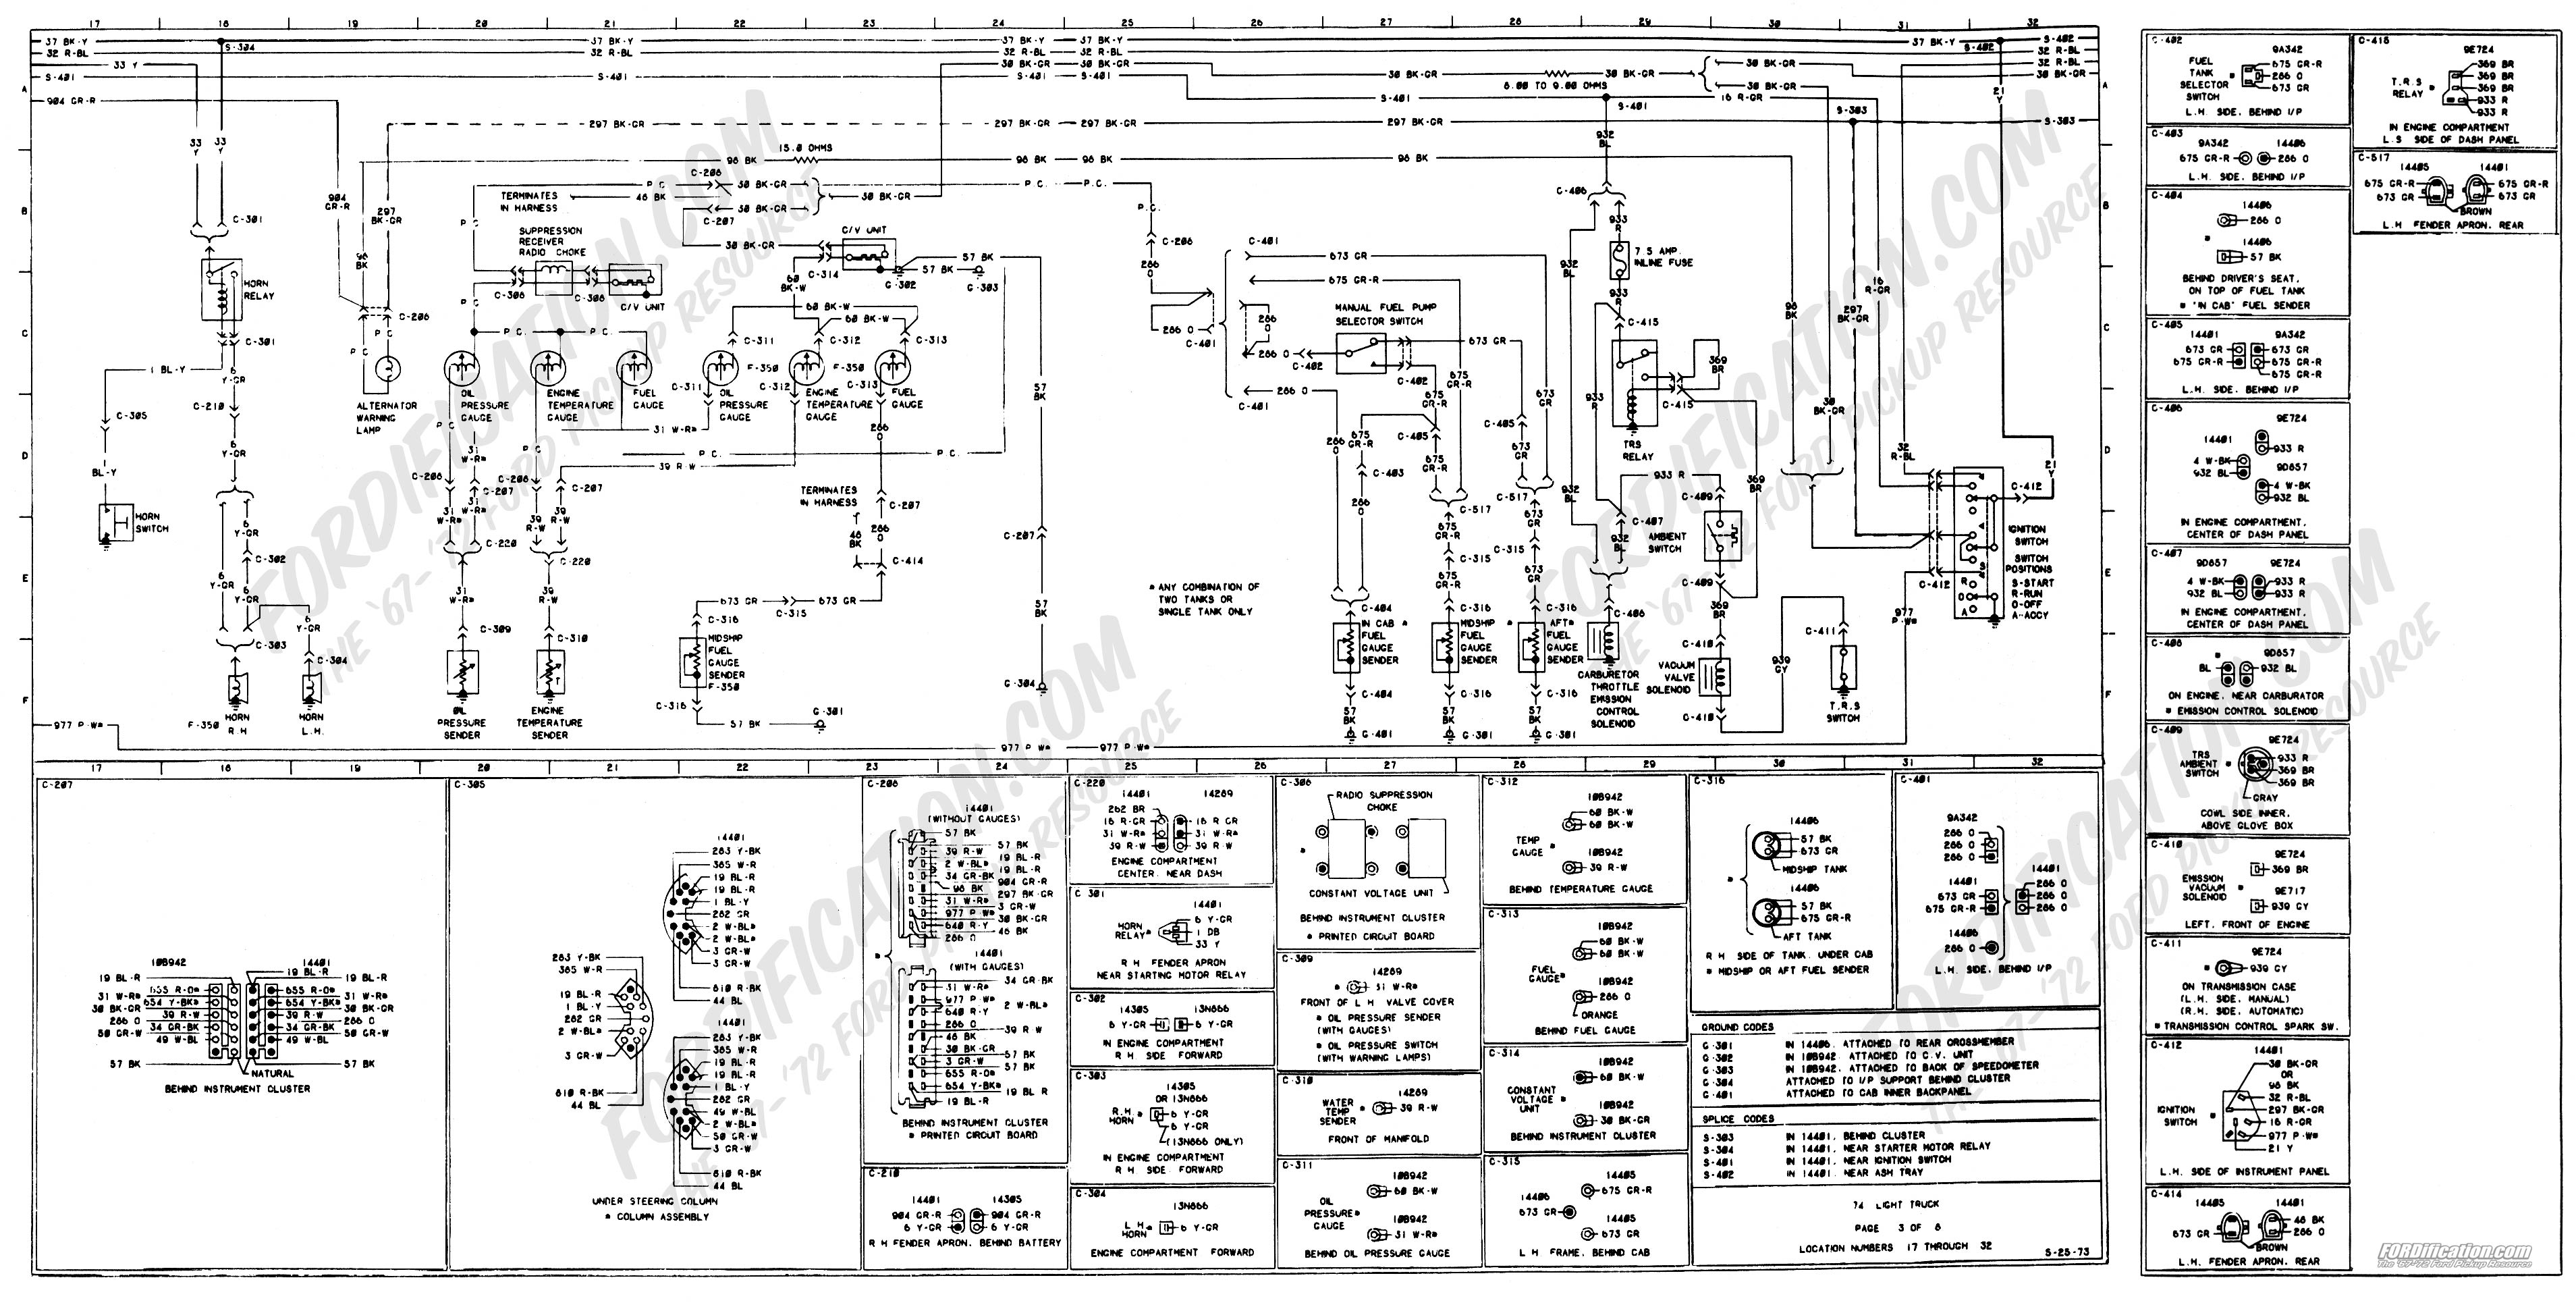 Wiring Diagram International R 190 Truck Best Library Toyota Forklift Pdf Diagrams Hiace Body 1978 Dodge Page 03